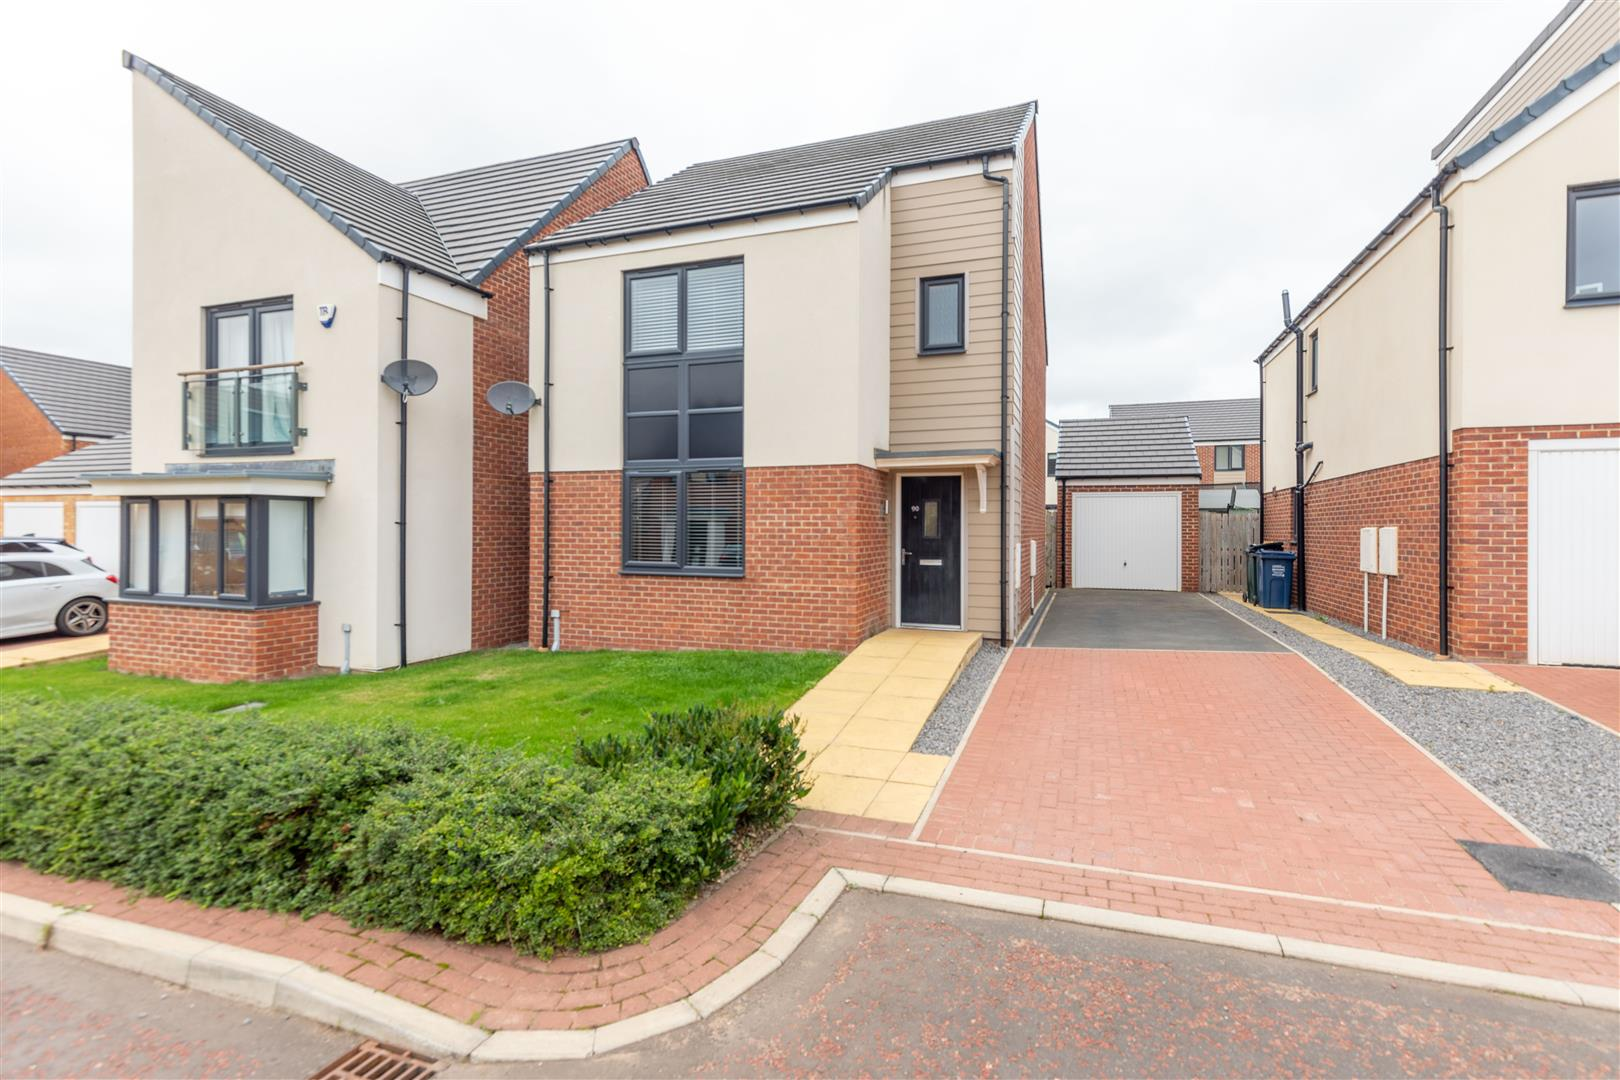 3 bed detached house to rent in Newcastle Upon Tyne, NE13 9DN  - Property Image 14